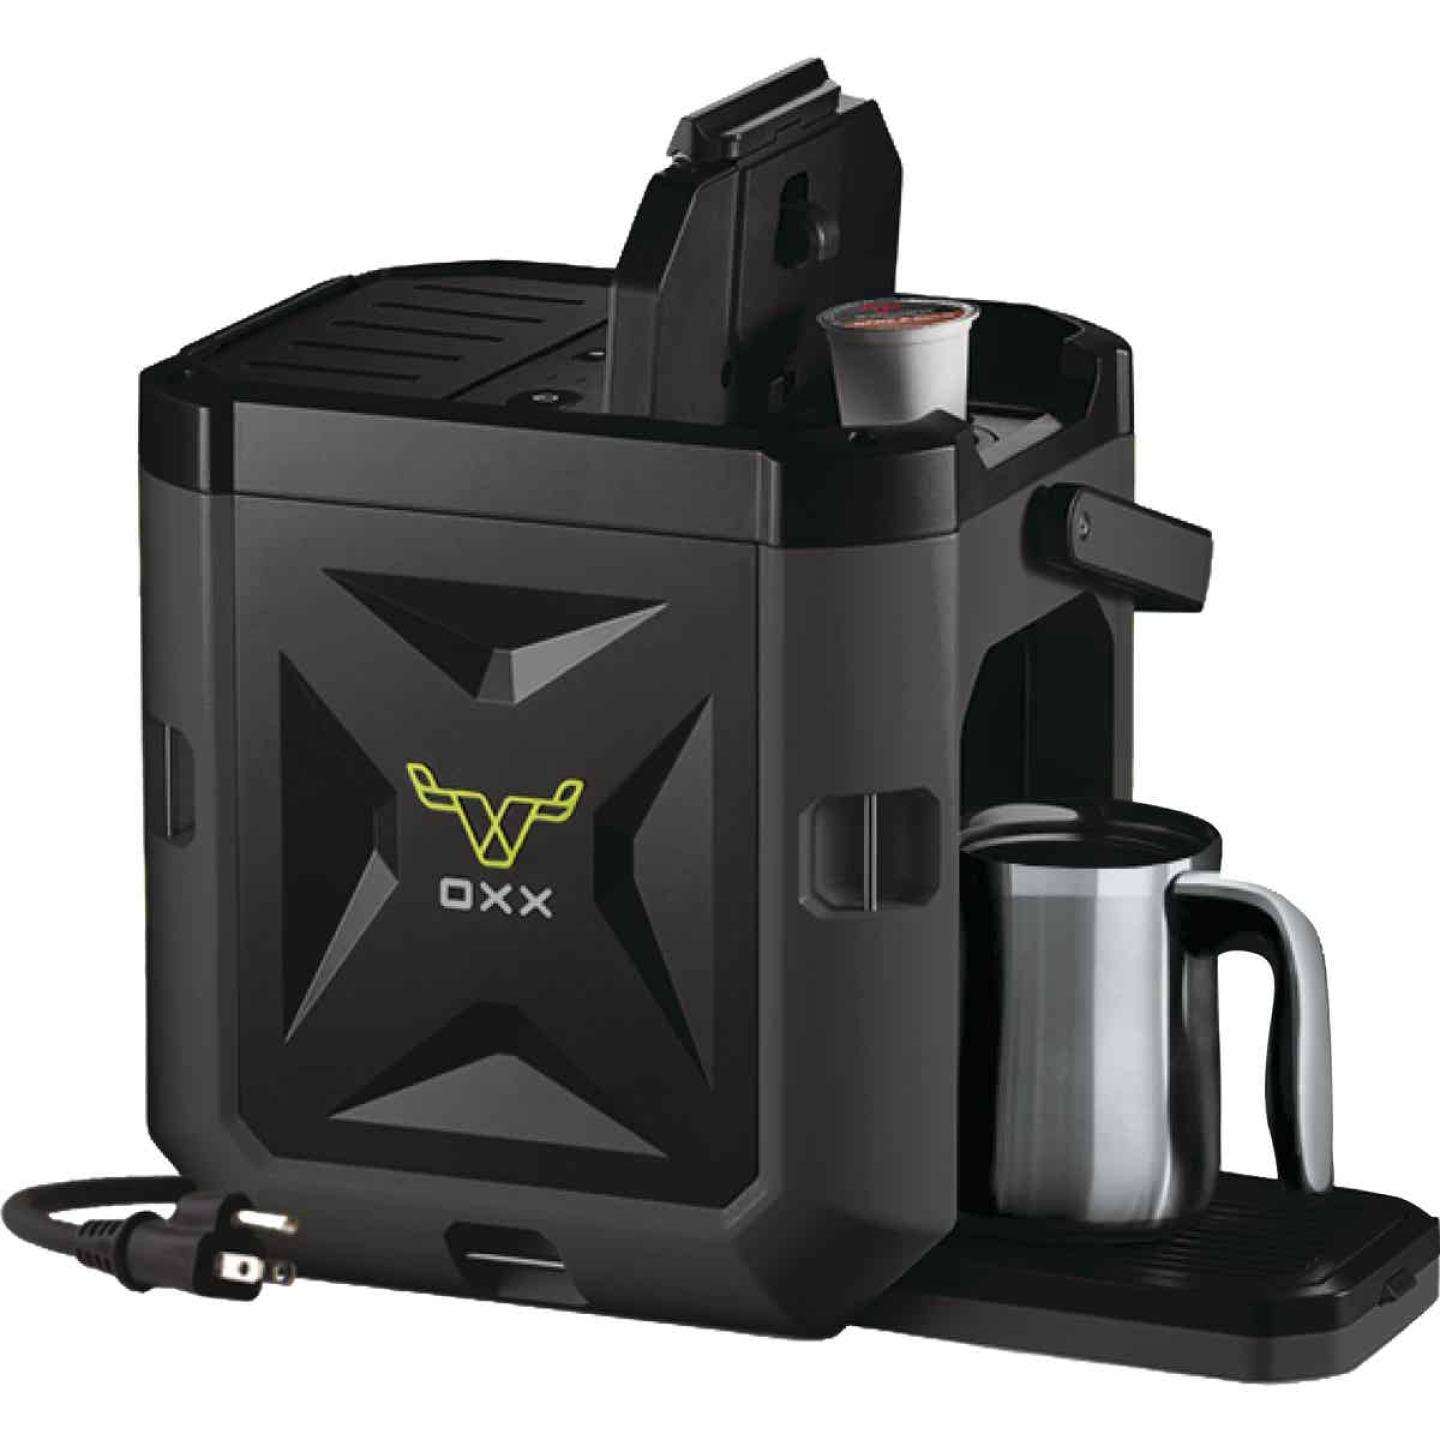 Oxx Coffeeboxx Single Serve Black Coffee Maker Image 1